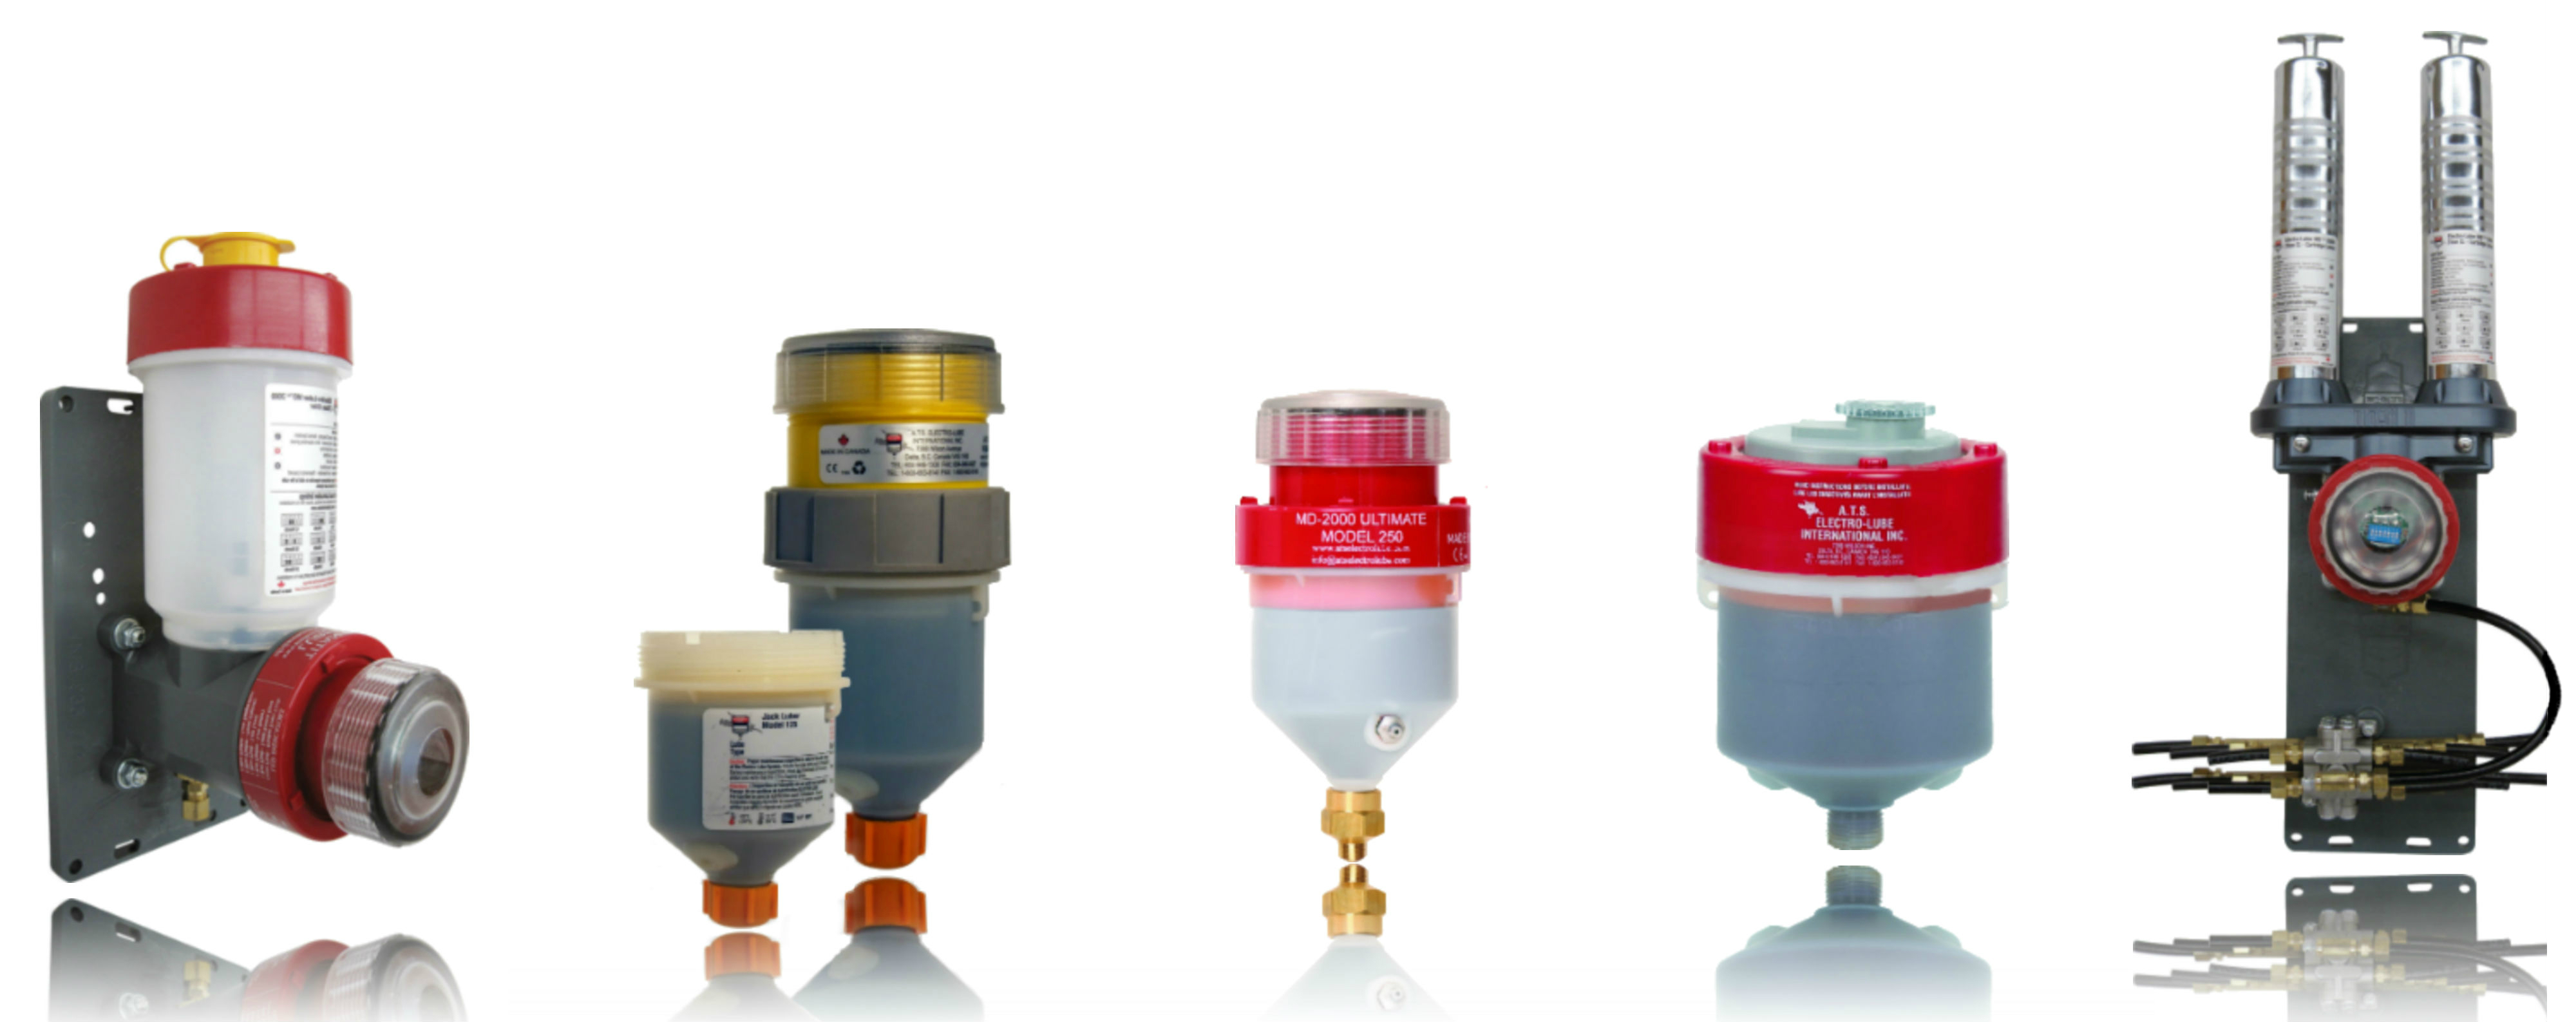 The ATS Electro-Lube product line provides lubrication solutions for any industrial application. The Ultimate Luber, TItan luber and TItan Oiler are the most powerful automatic lubricators available, whilst the electro-luber and Jack luber are versatile for extreme lubrication conditions